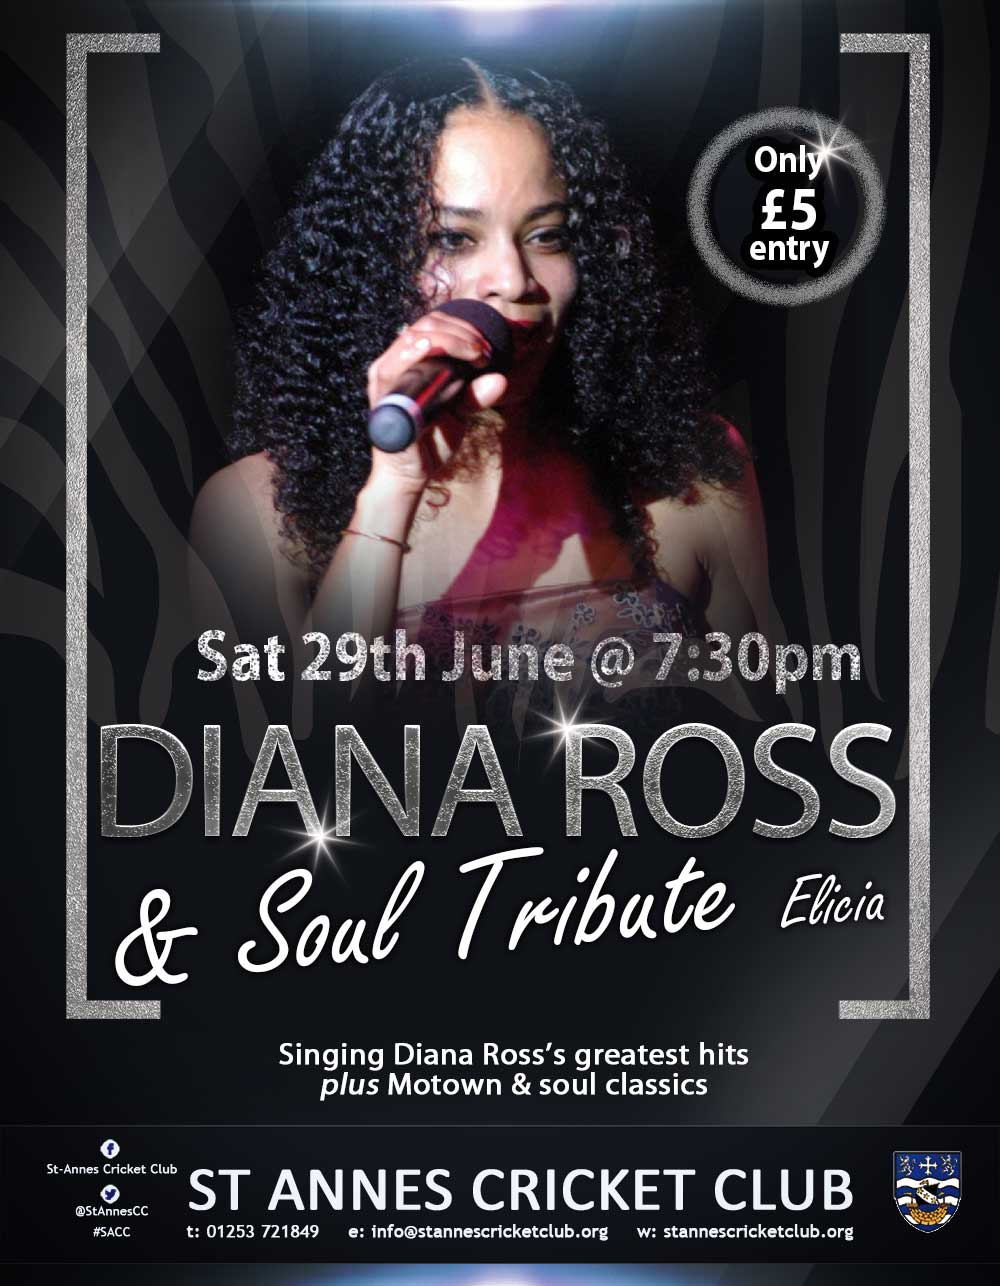 Diana Ross tribute act Elicia, singing soul & Motown classics